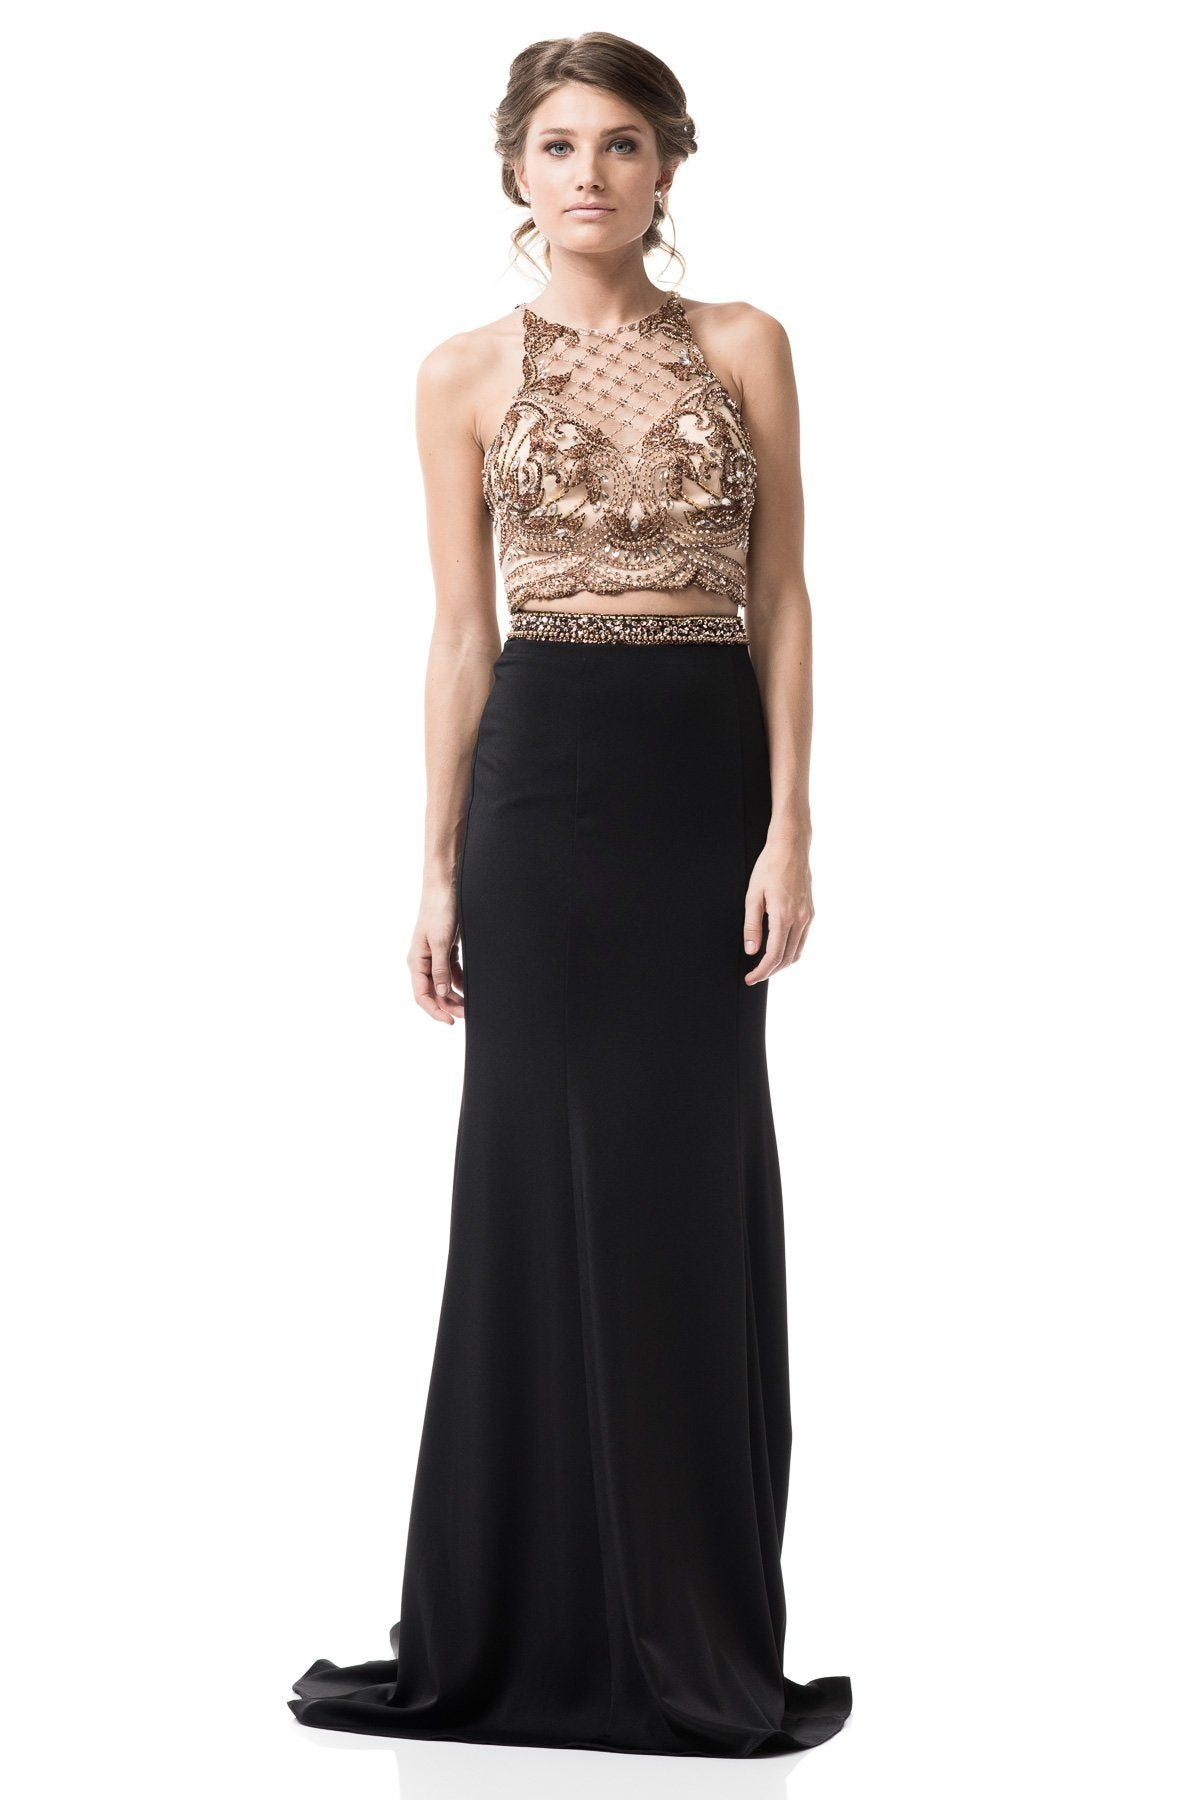 Black and Gold Short Prom Dresses